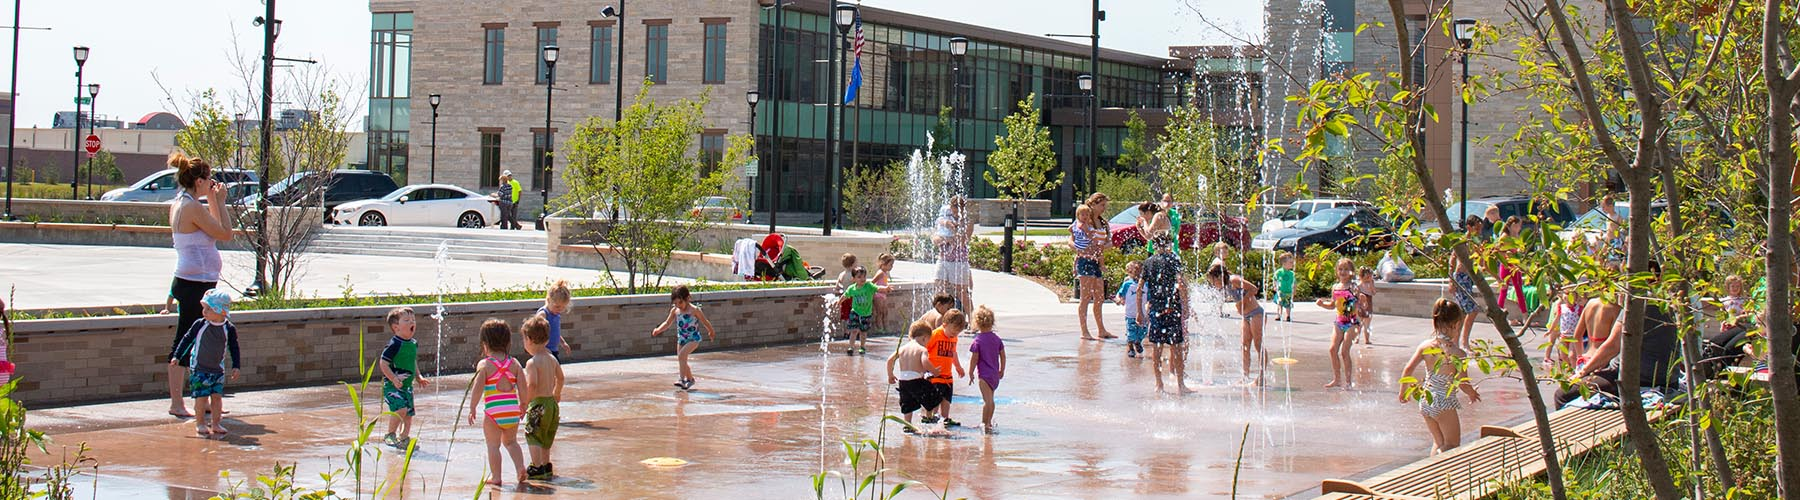 Kids playing on Splash Pad in front of Civic Center